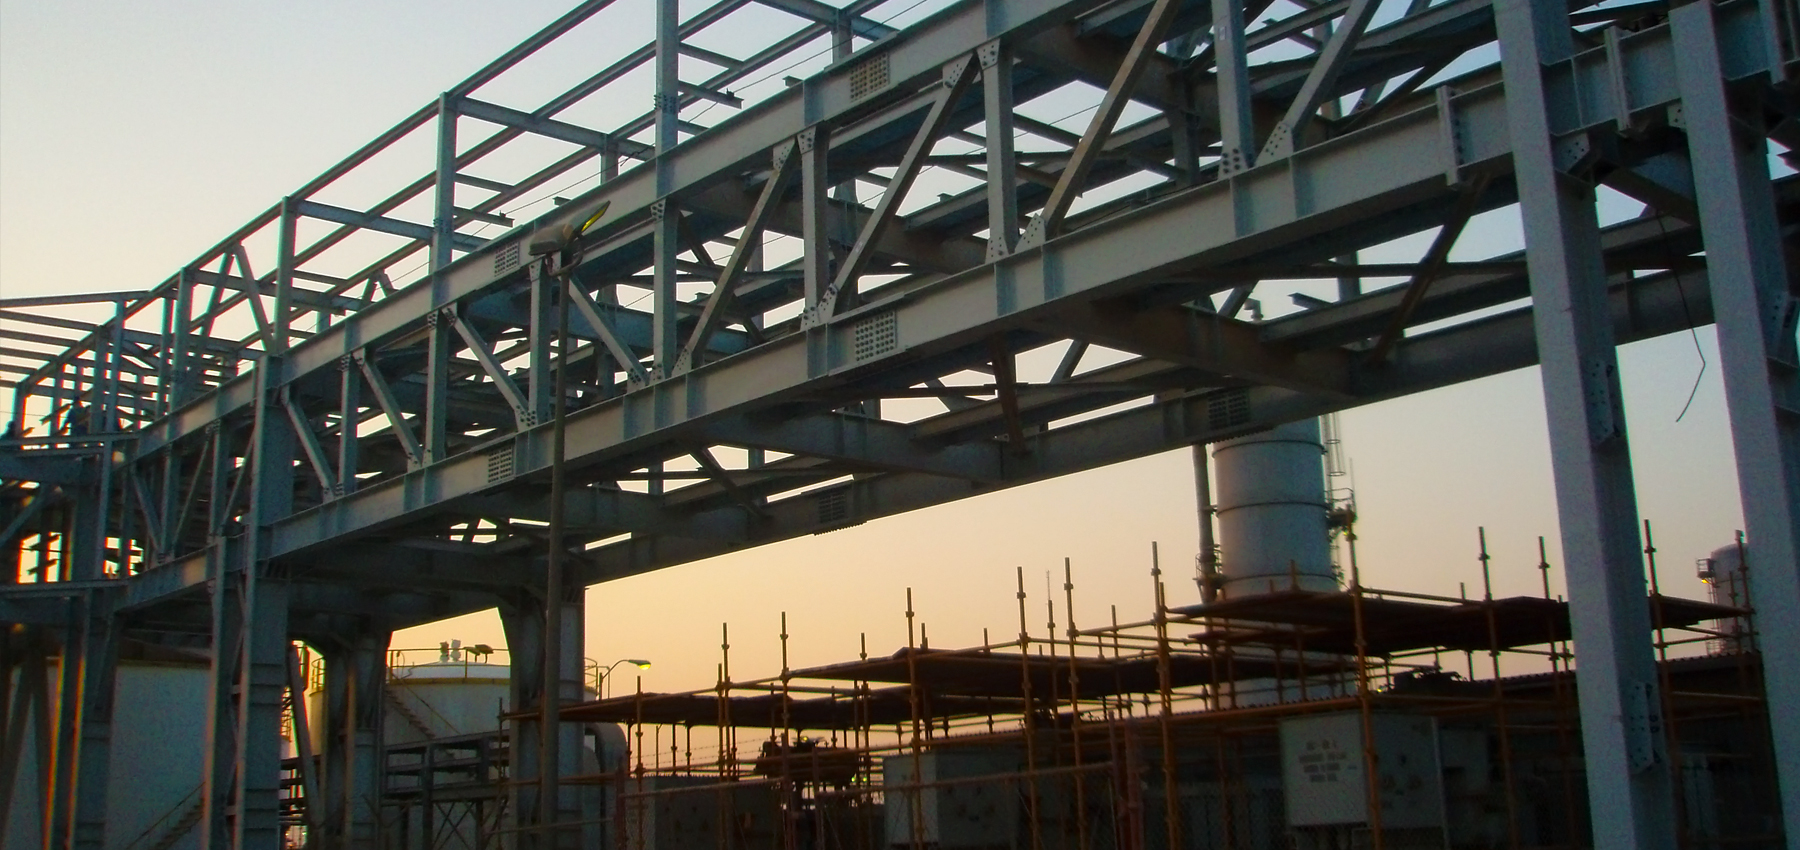 <h1>Process Steel Structures Engineering</h1>